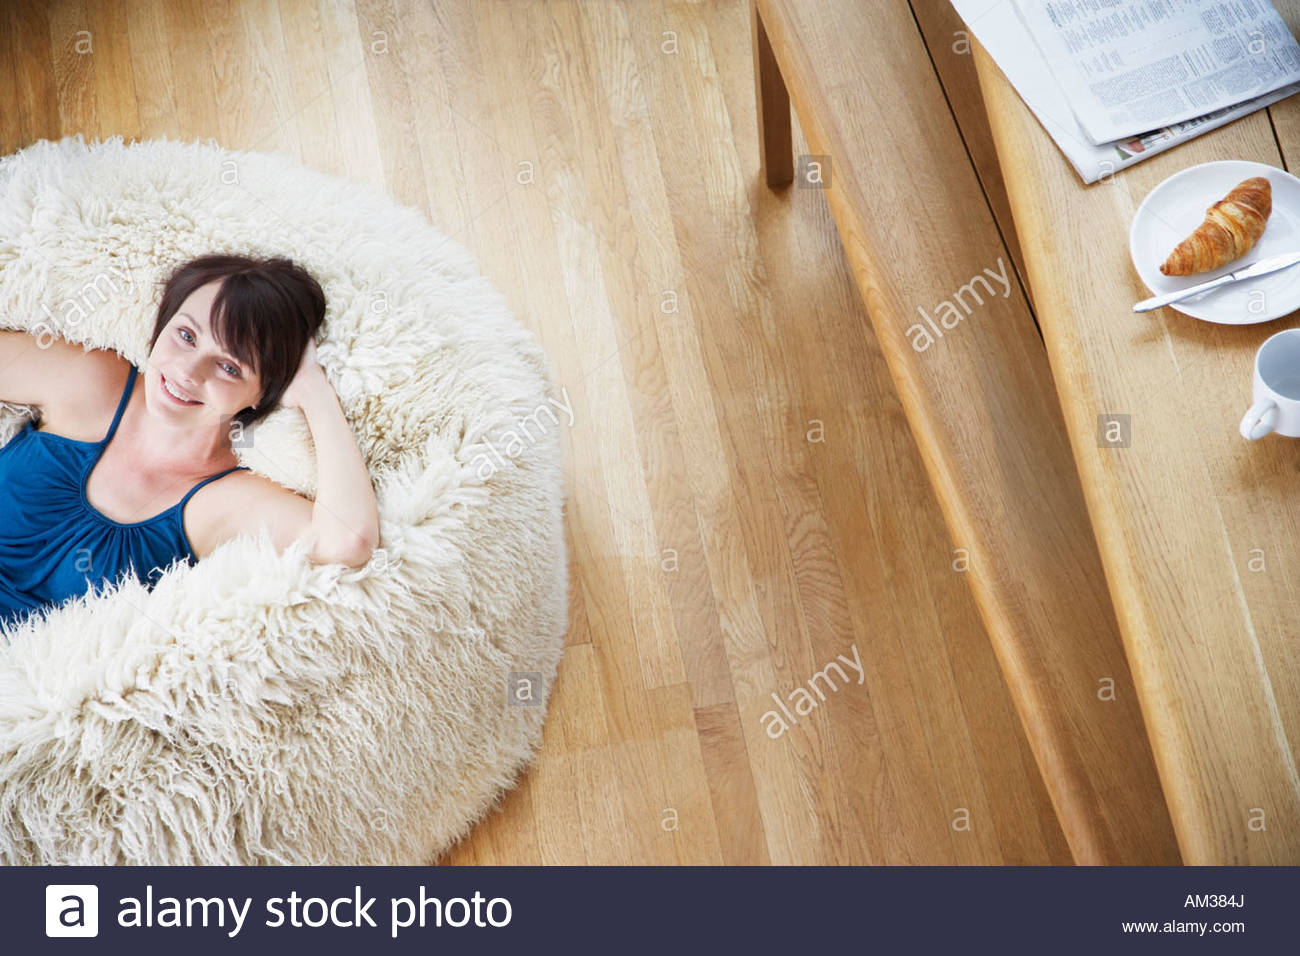 Woman on furry bean bag chair in living room - Stock Image